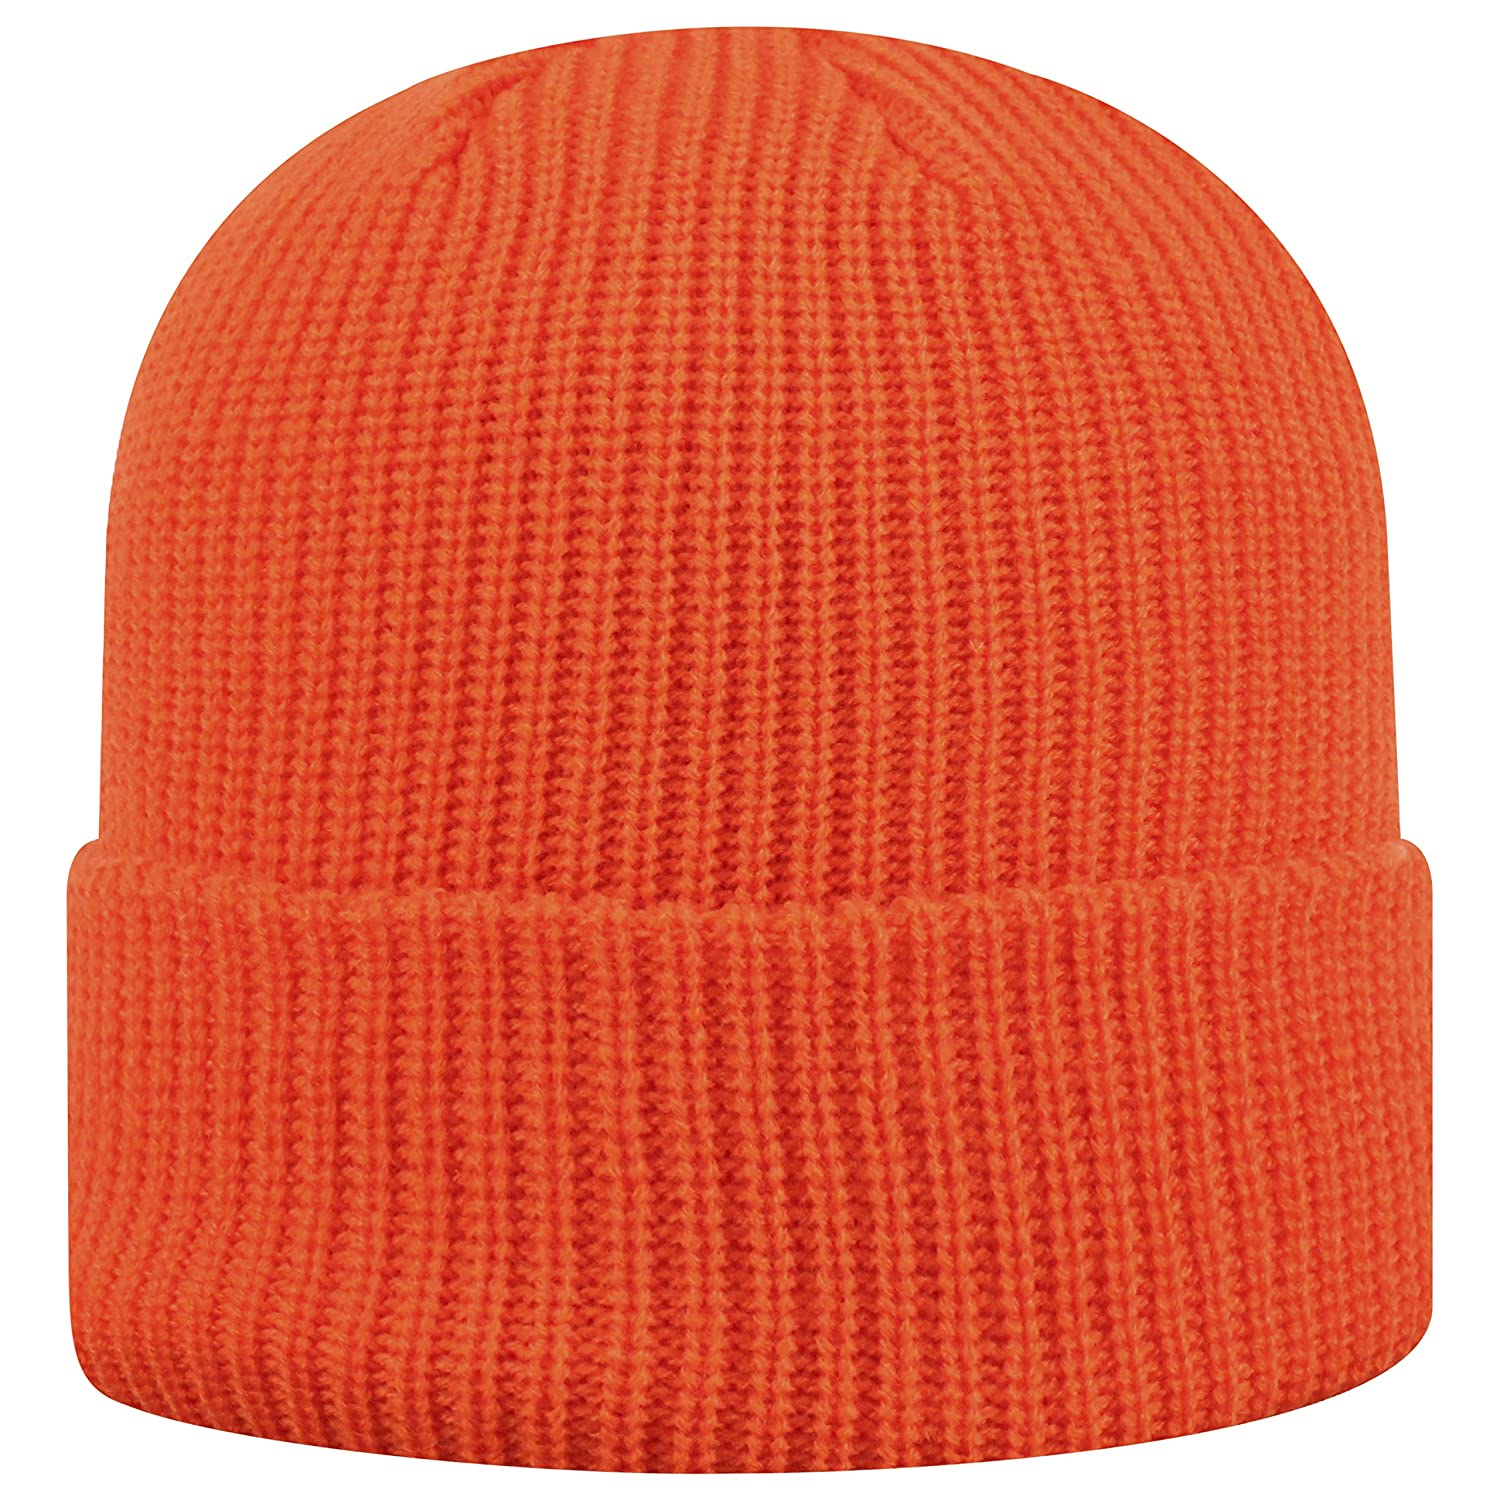 Top of the World Clemson Tigers Official NCAA Cuffed Knit Incline Stocking Stretch Sock Hat Cap Beanie 483436